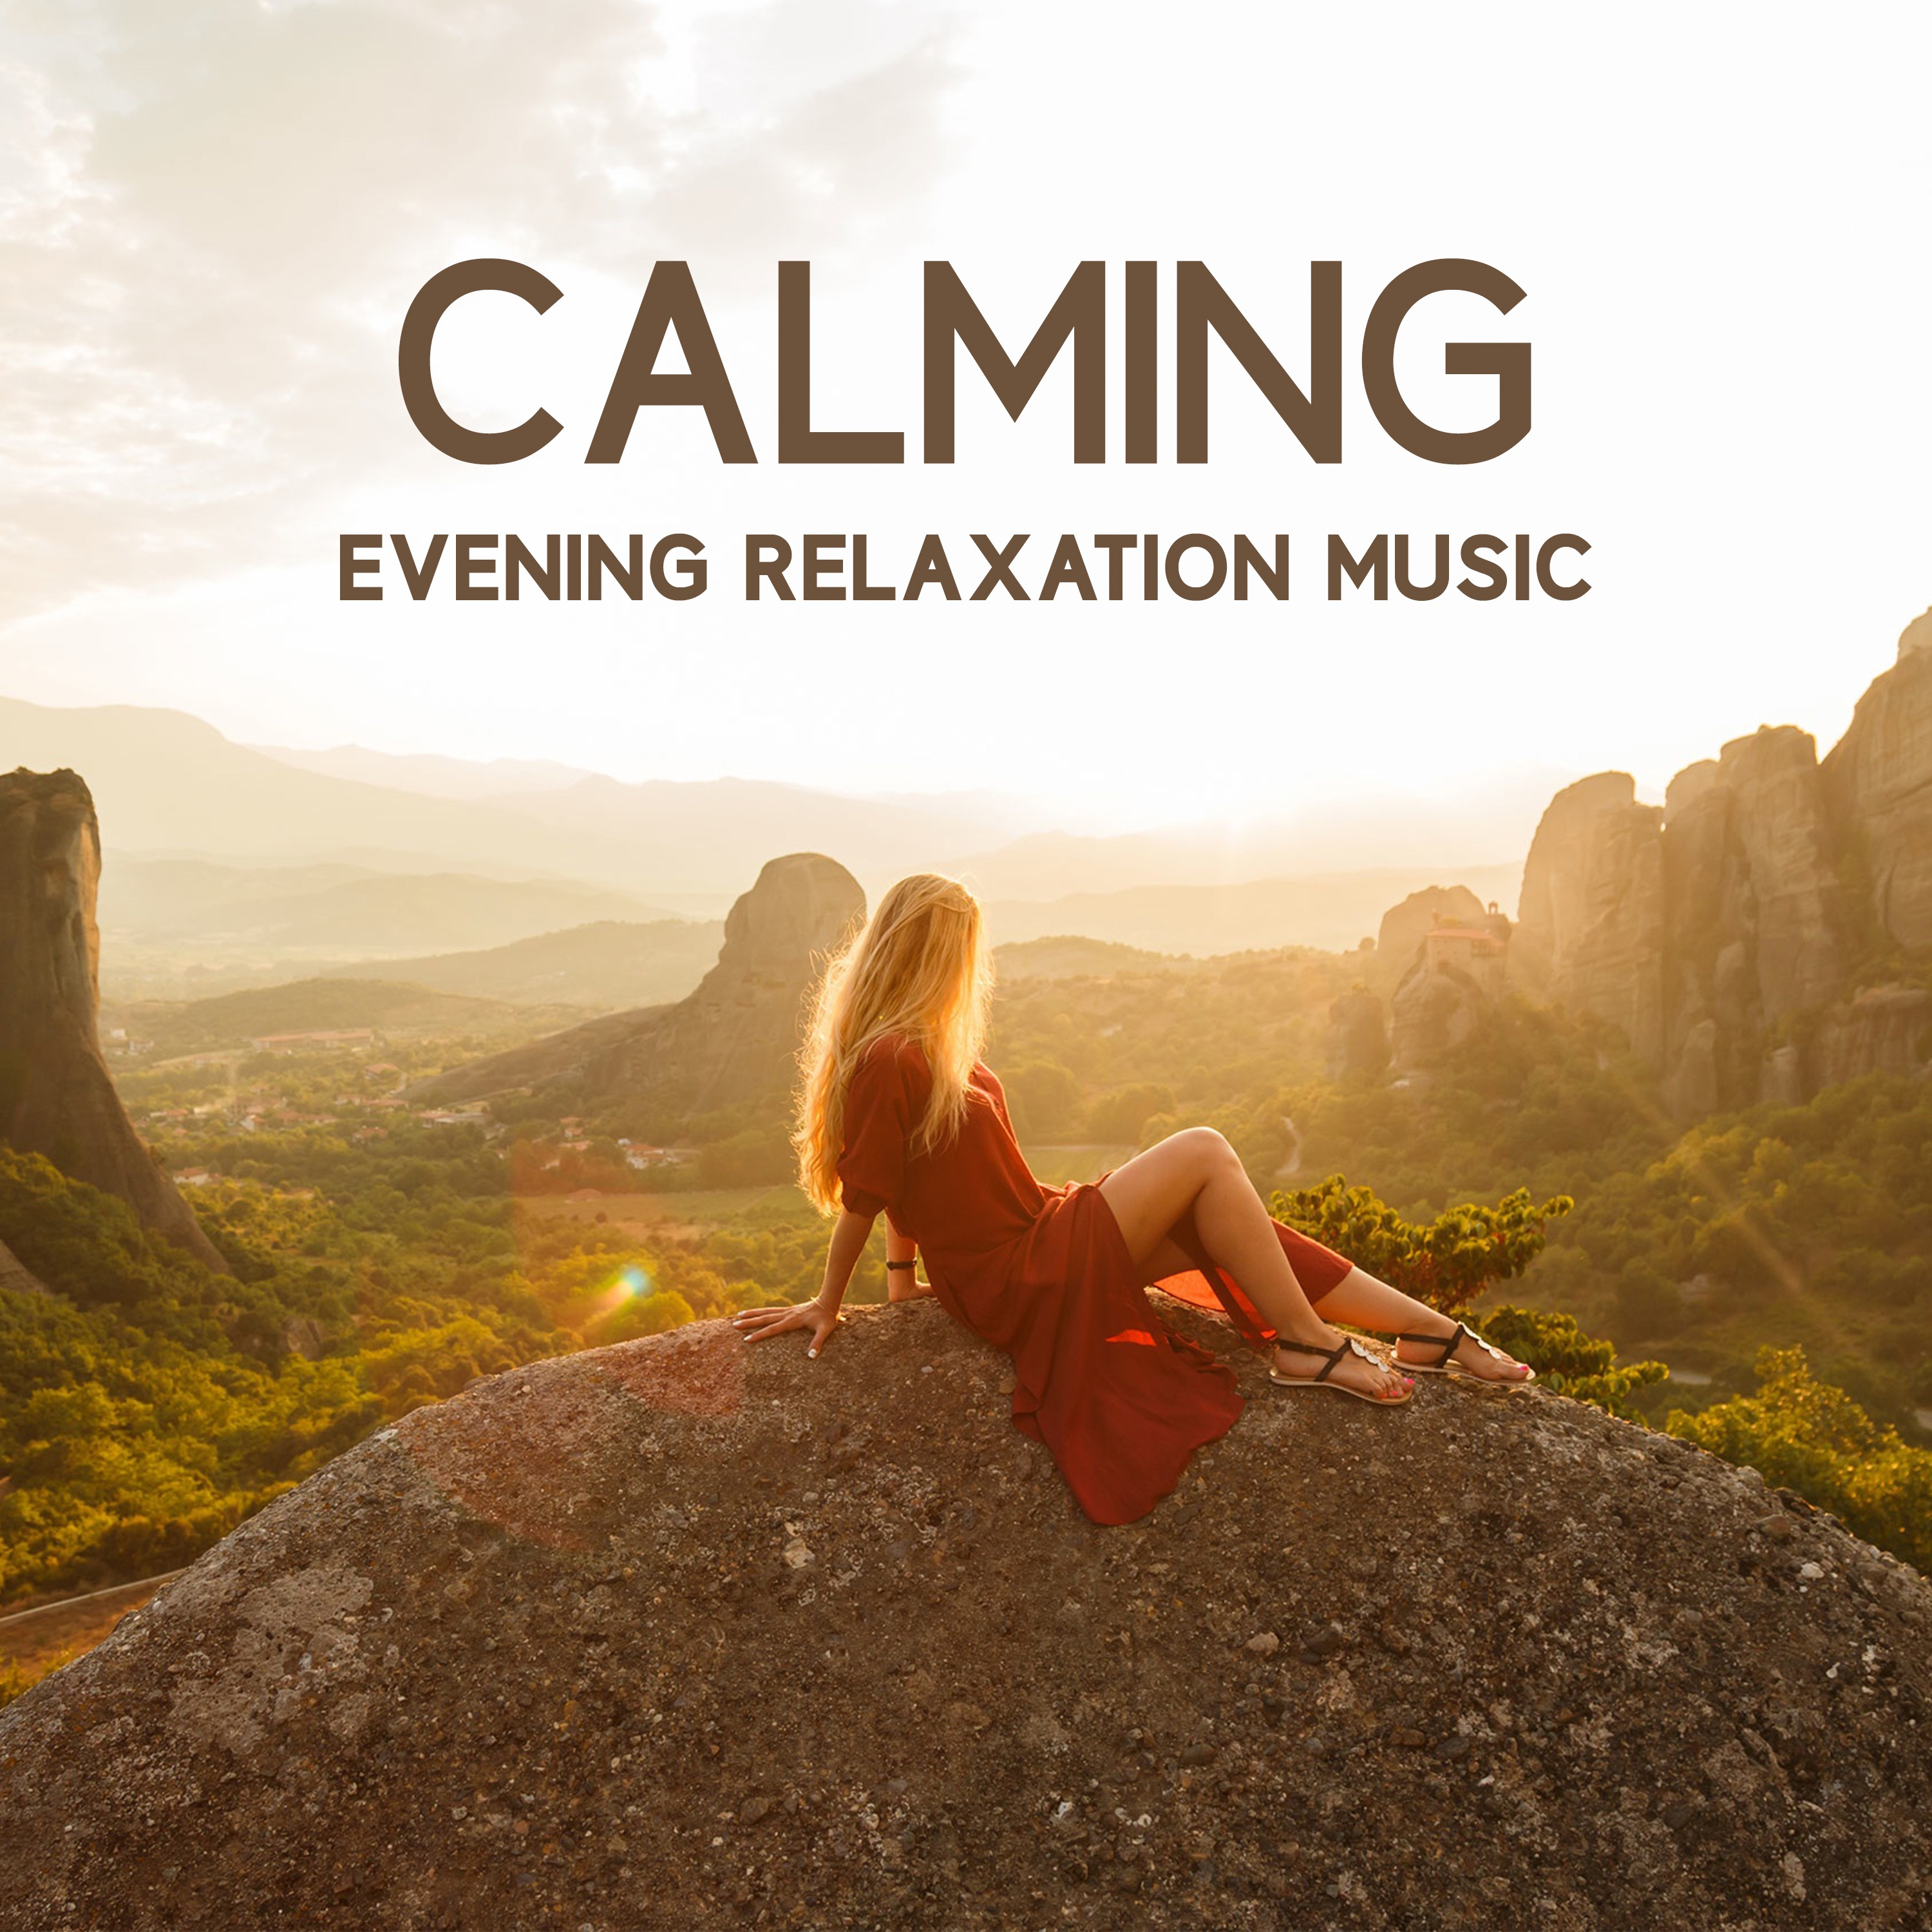 Calming Evening Relaxation Music